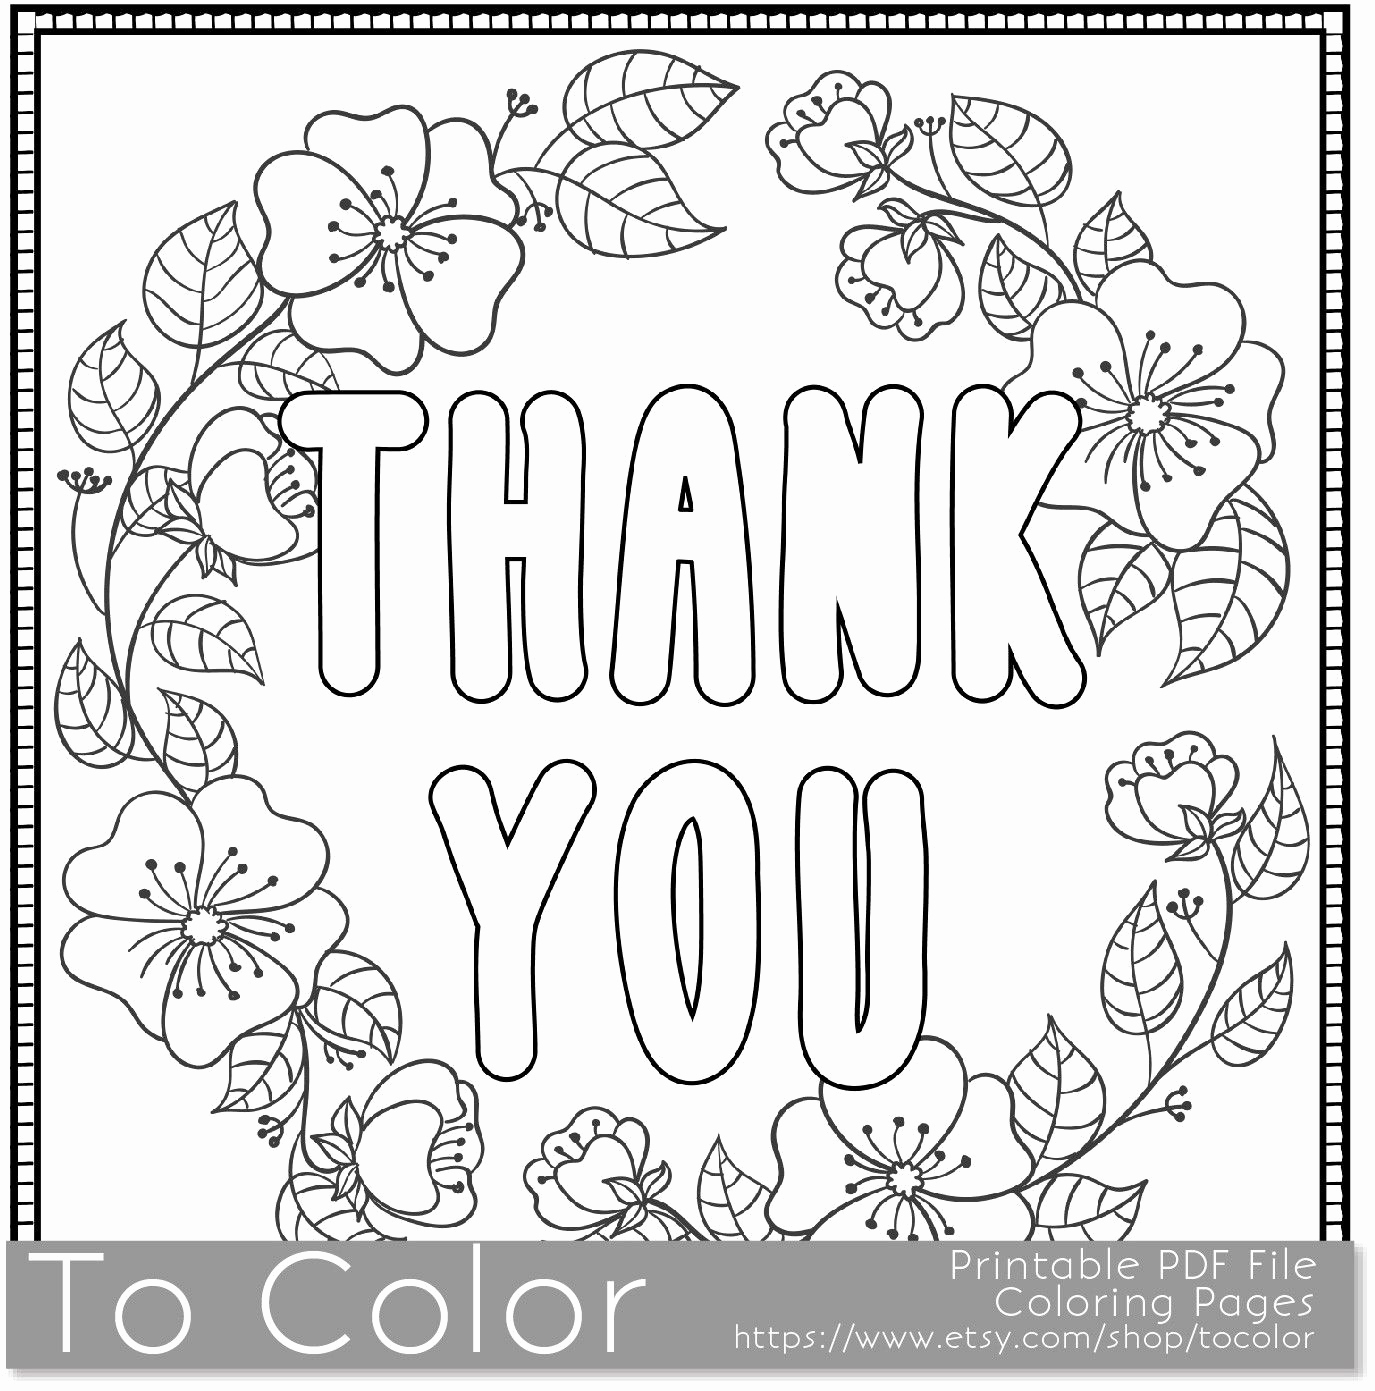 Christmas Coloring Sheets Pdf With Pages Nativity Printable Thank You Page